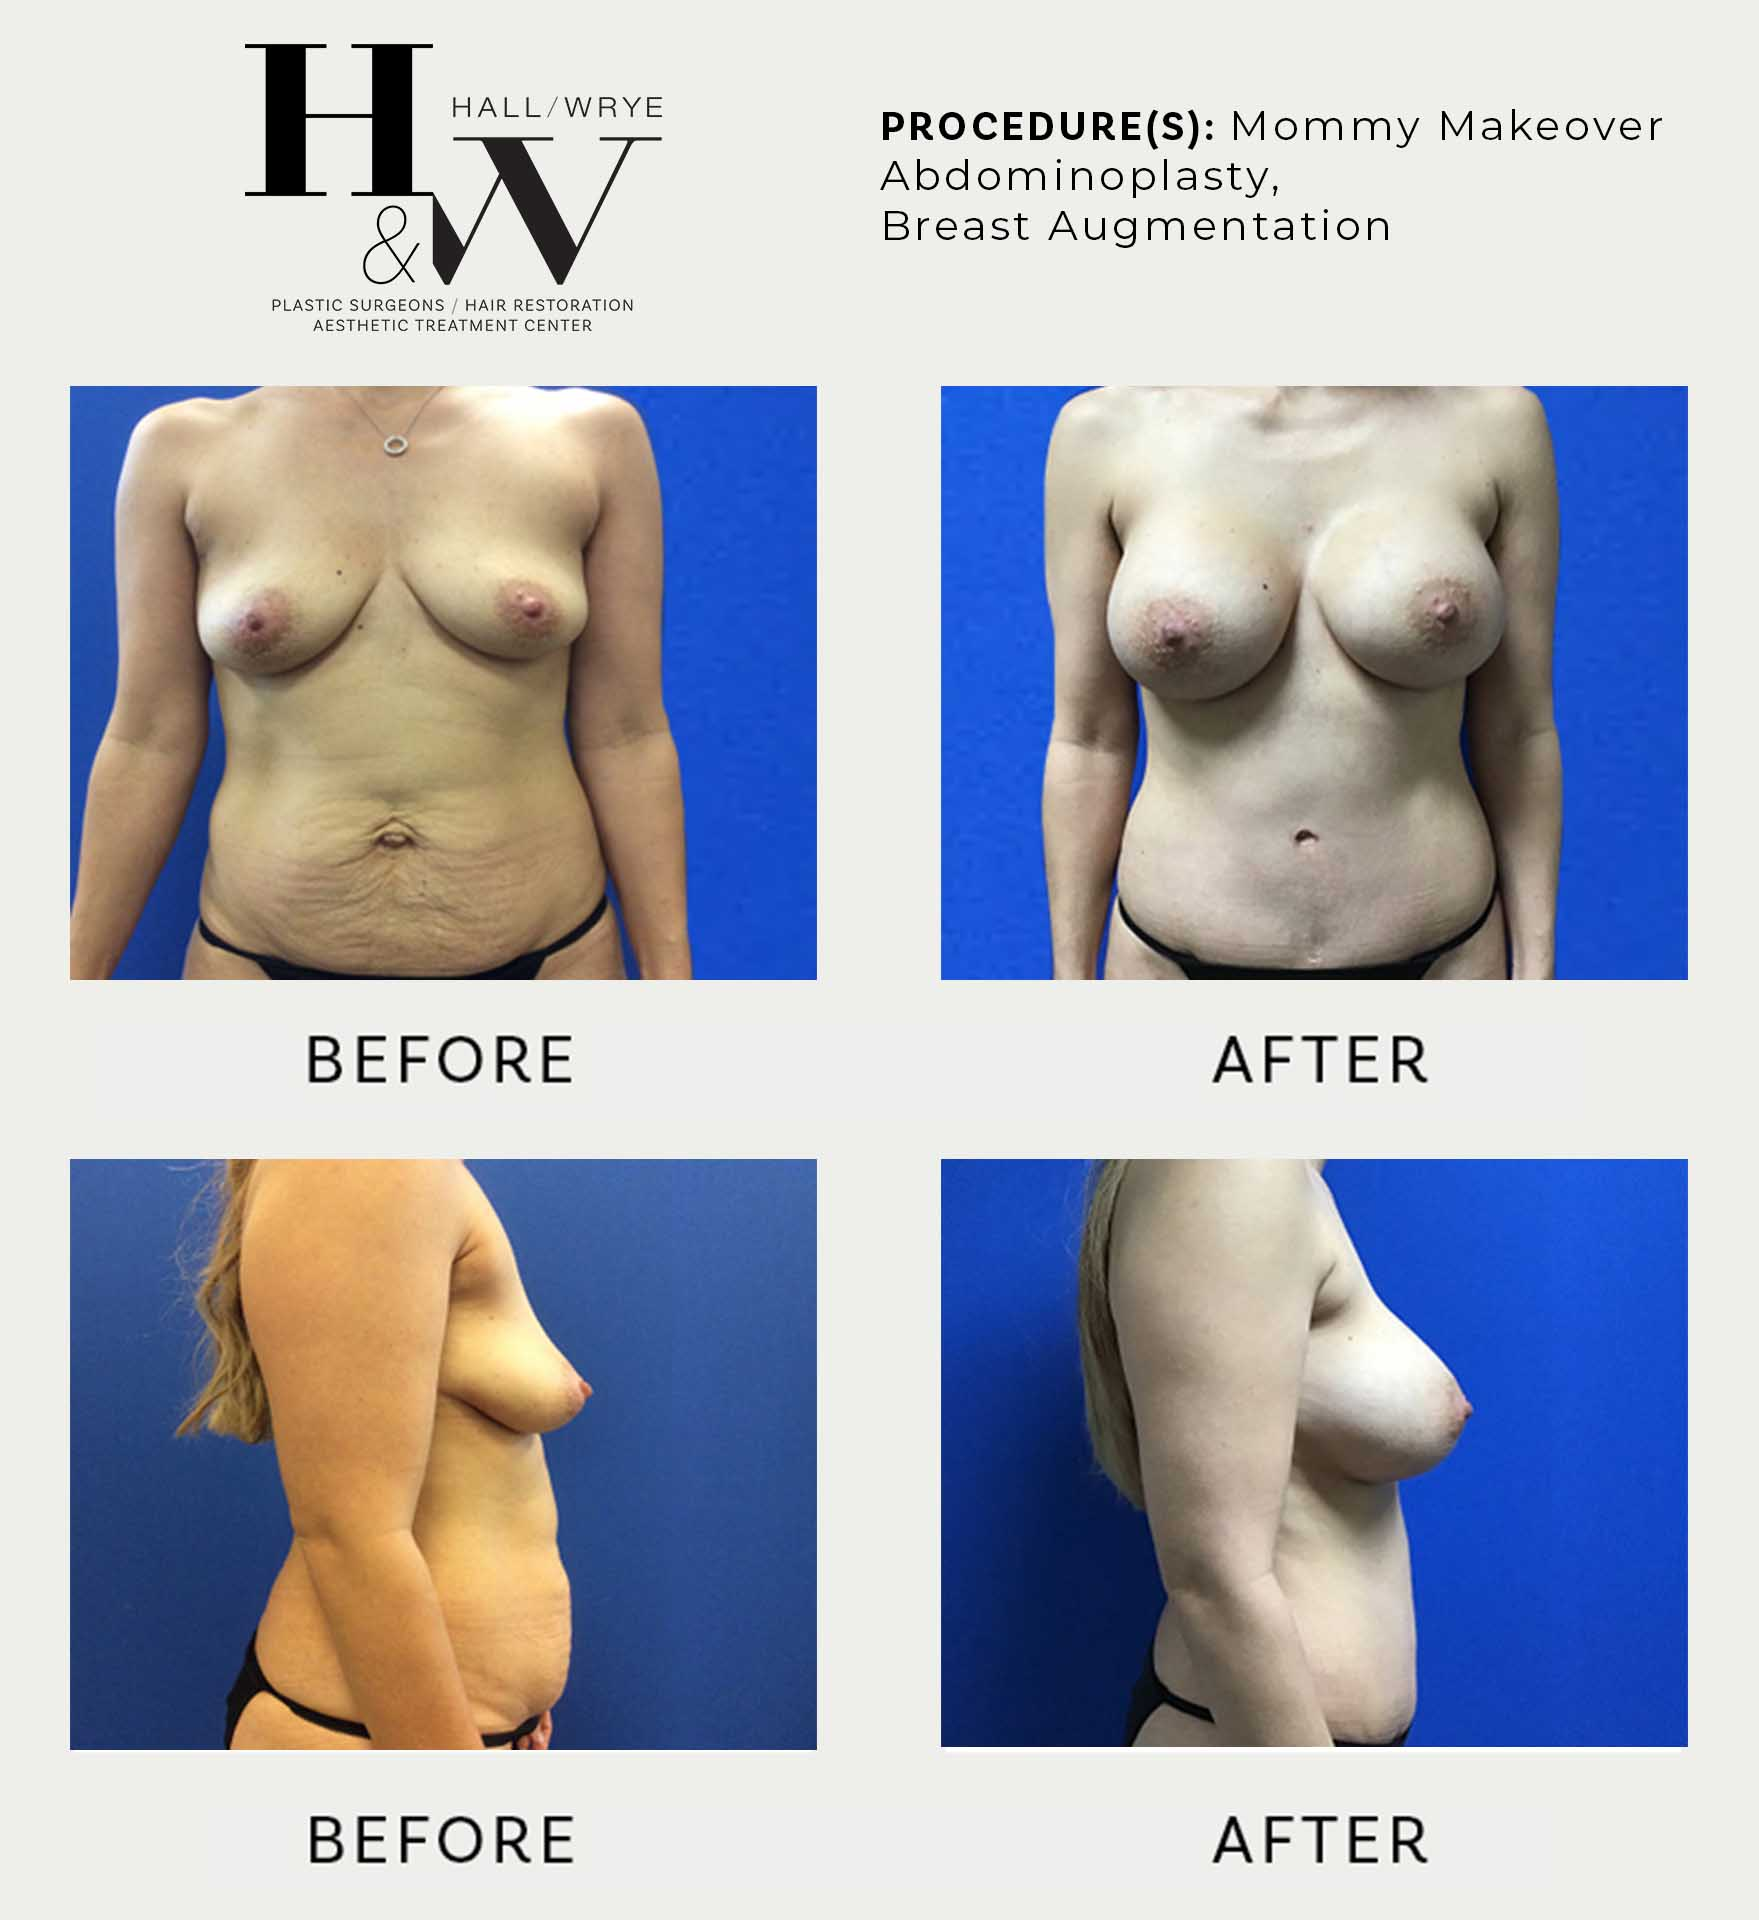 Hall and Wrye Plastic Surgeons in Reno NV – Breast Lifts – Facelifts – Cosmetic Surgery and Aesthetic Treatment Services